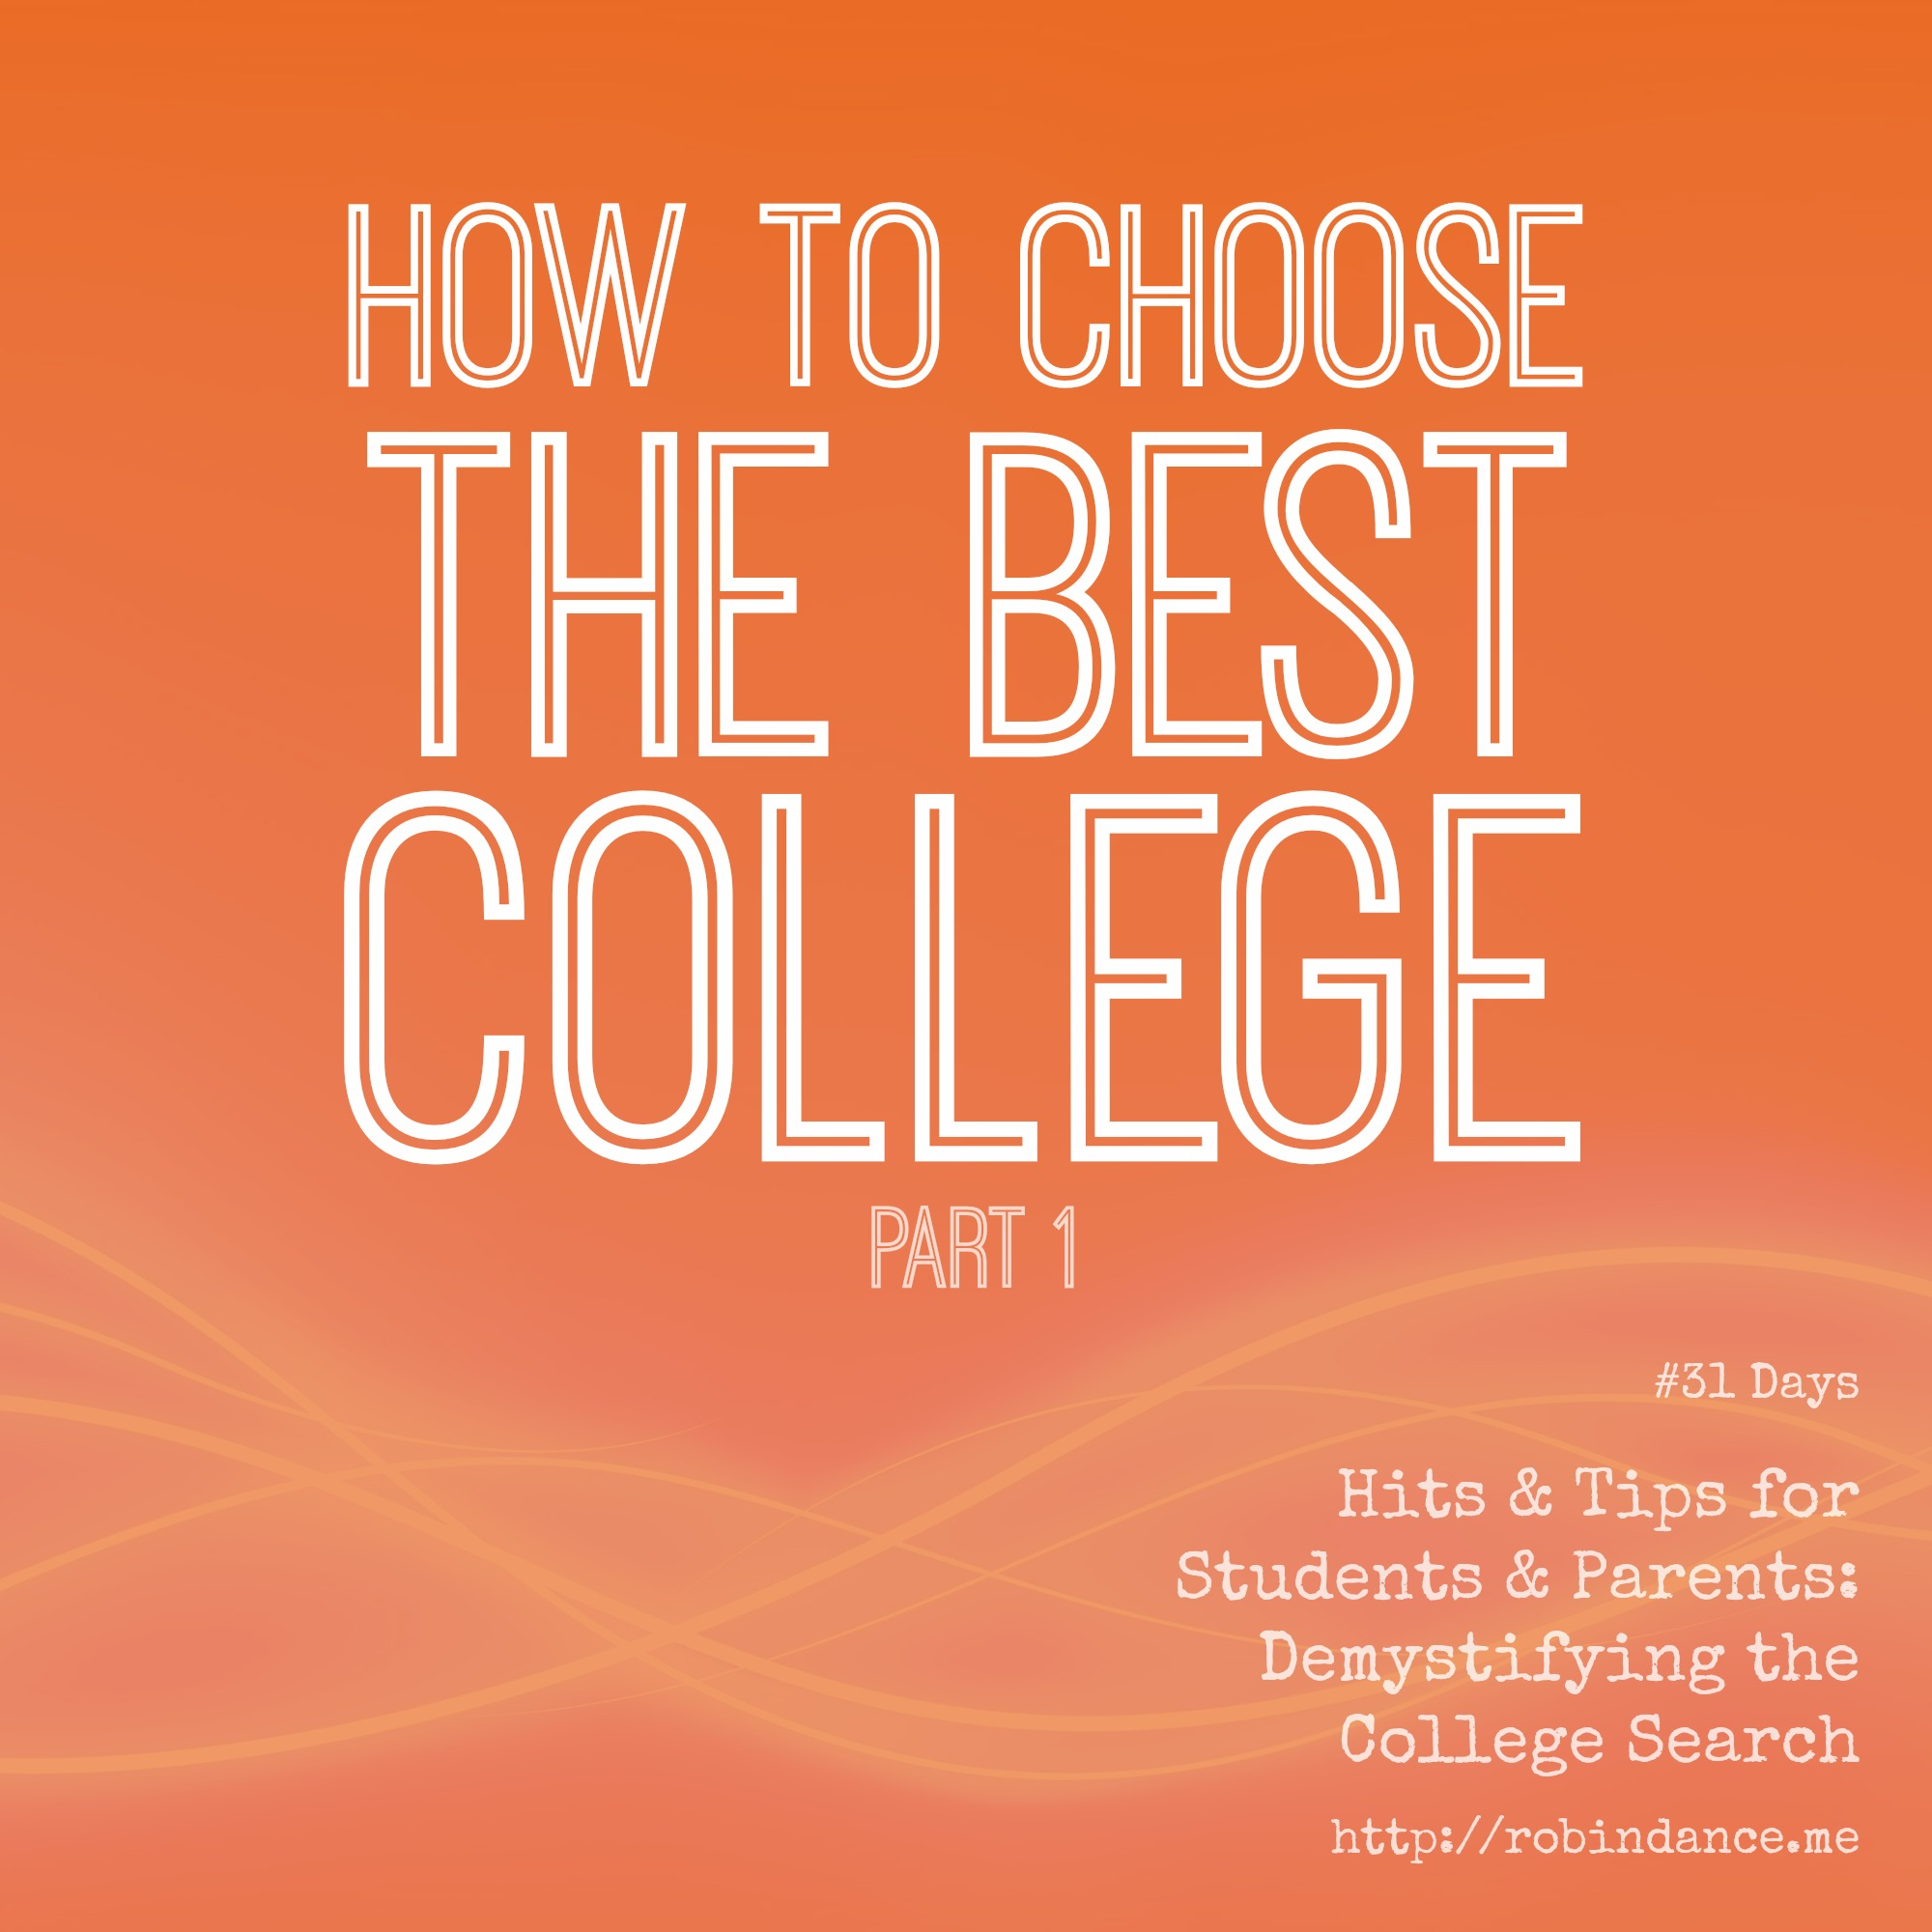 How to Choose The Best College (Part 1) #31Days